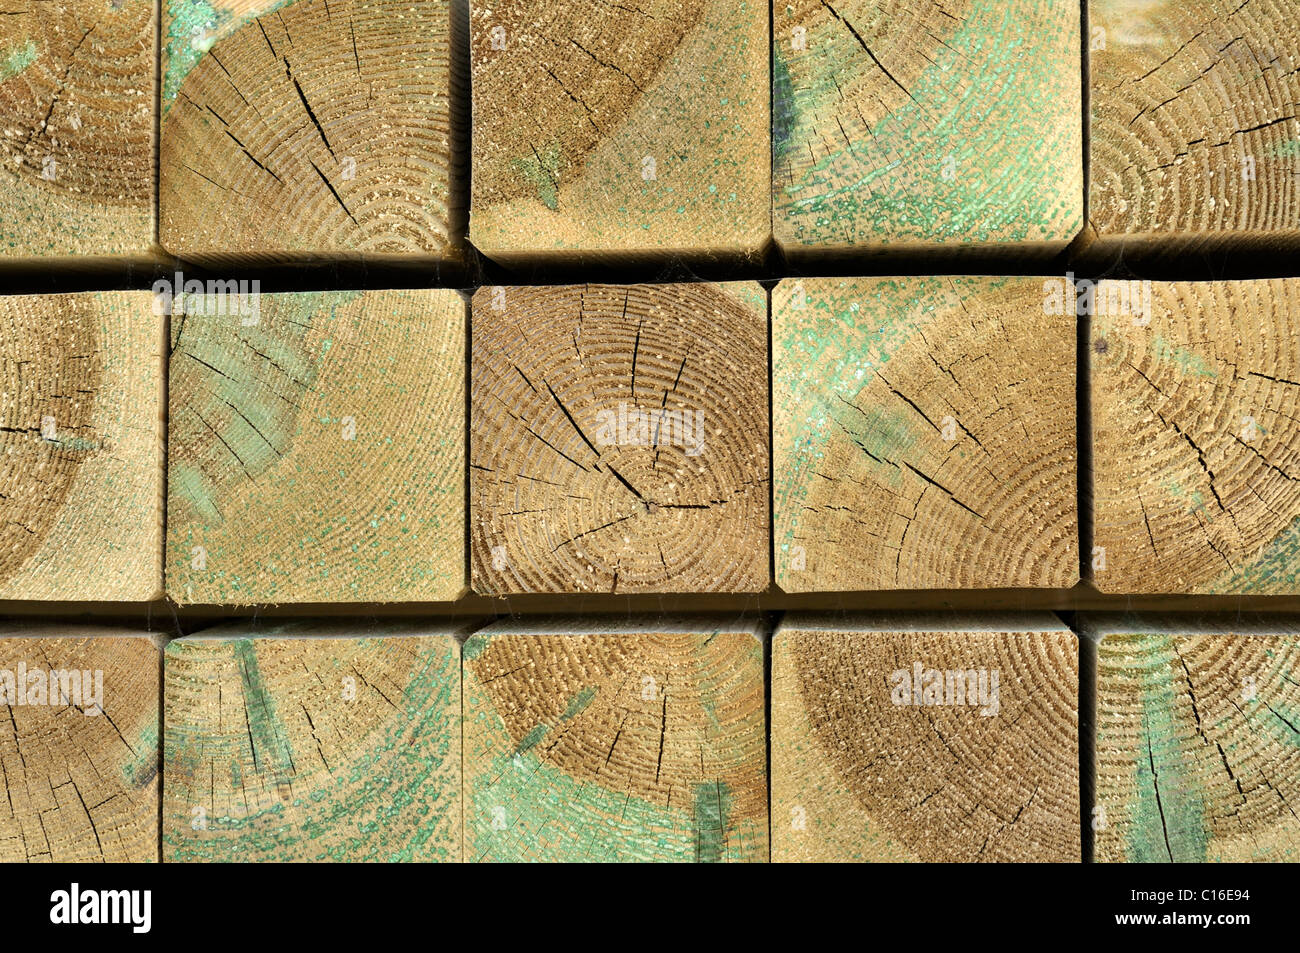 Impregnated, stacked rectangular blocks of wood, texture, front - Stock Image